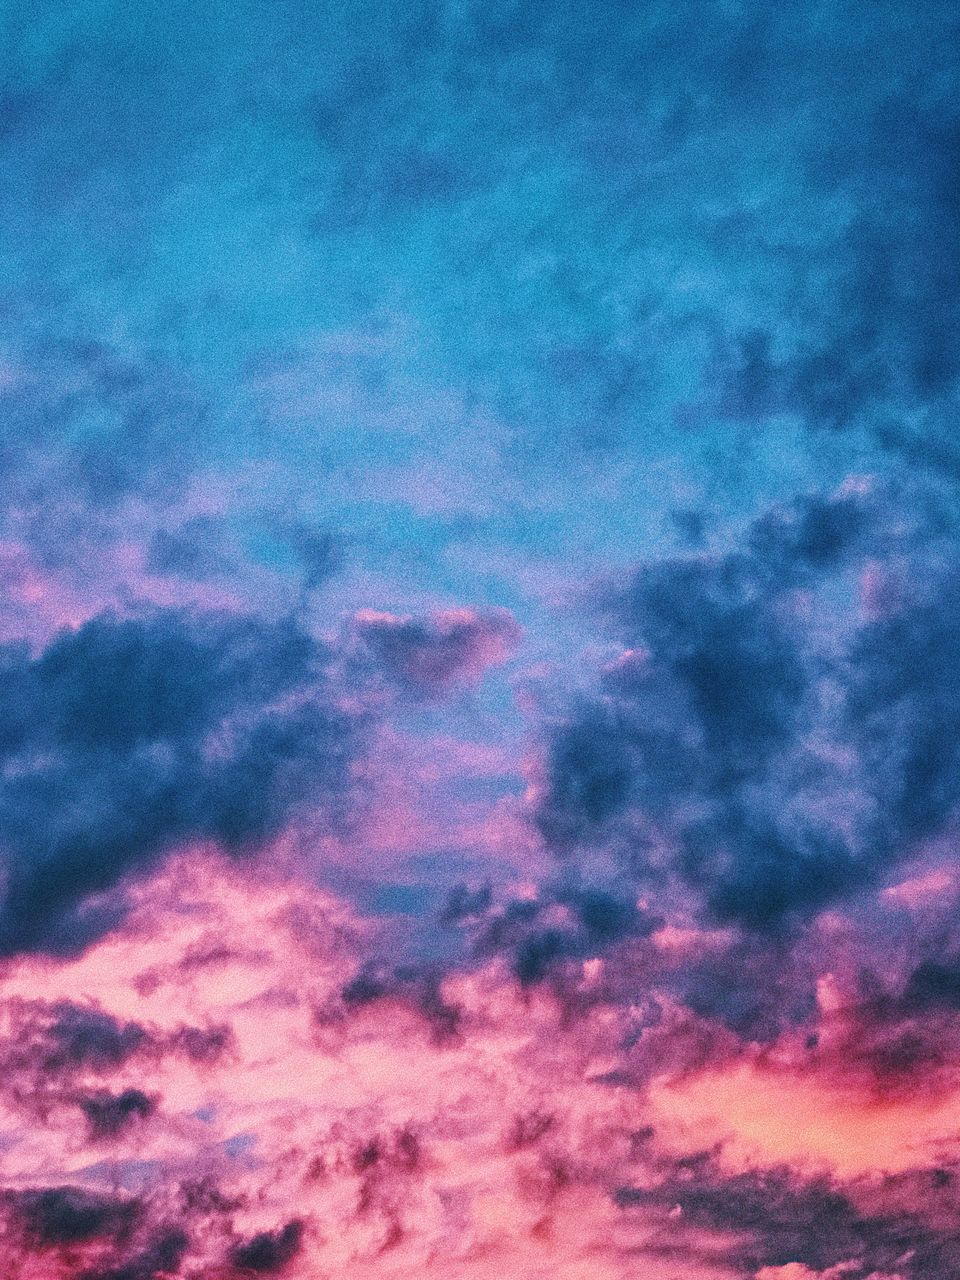 sky, cloud - sky, backgrounds, beauty in nature, abstract, sunset, majestic, sky only, dramatic sky, nature, low angle view, full frame, scenics, tranquility, cloudscape, multi colored, no people, tranquil scene, pink color, outdoors, blue, space, day, astronomy